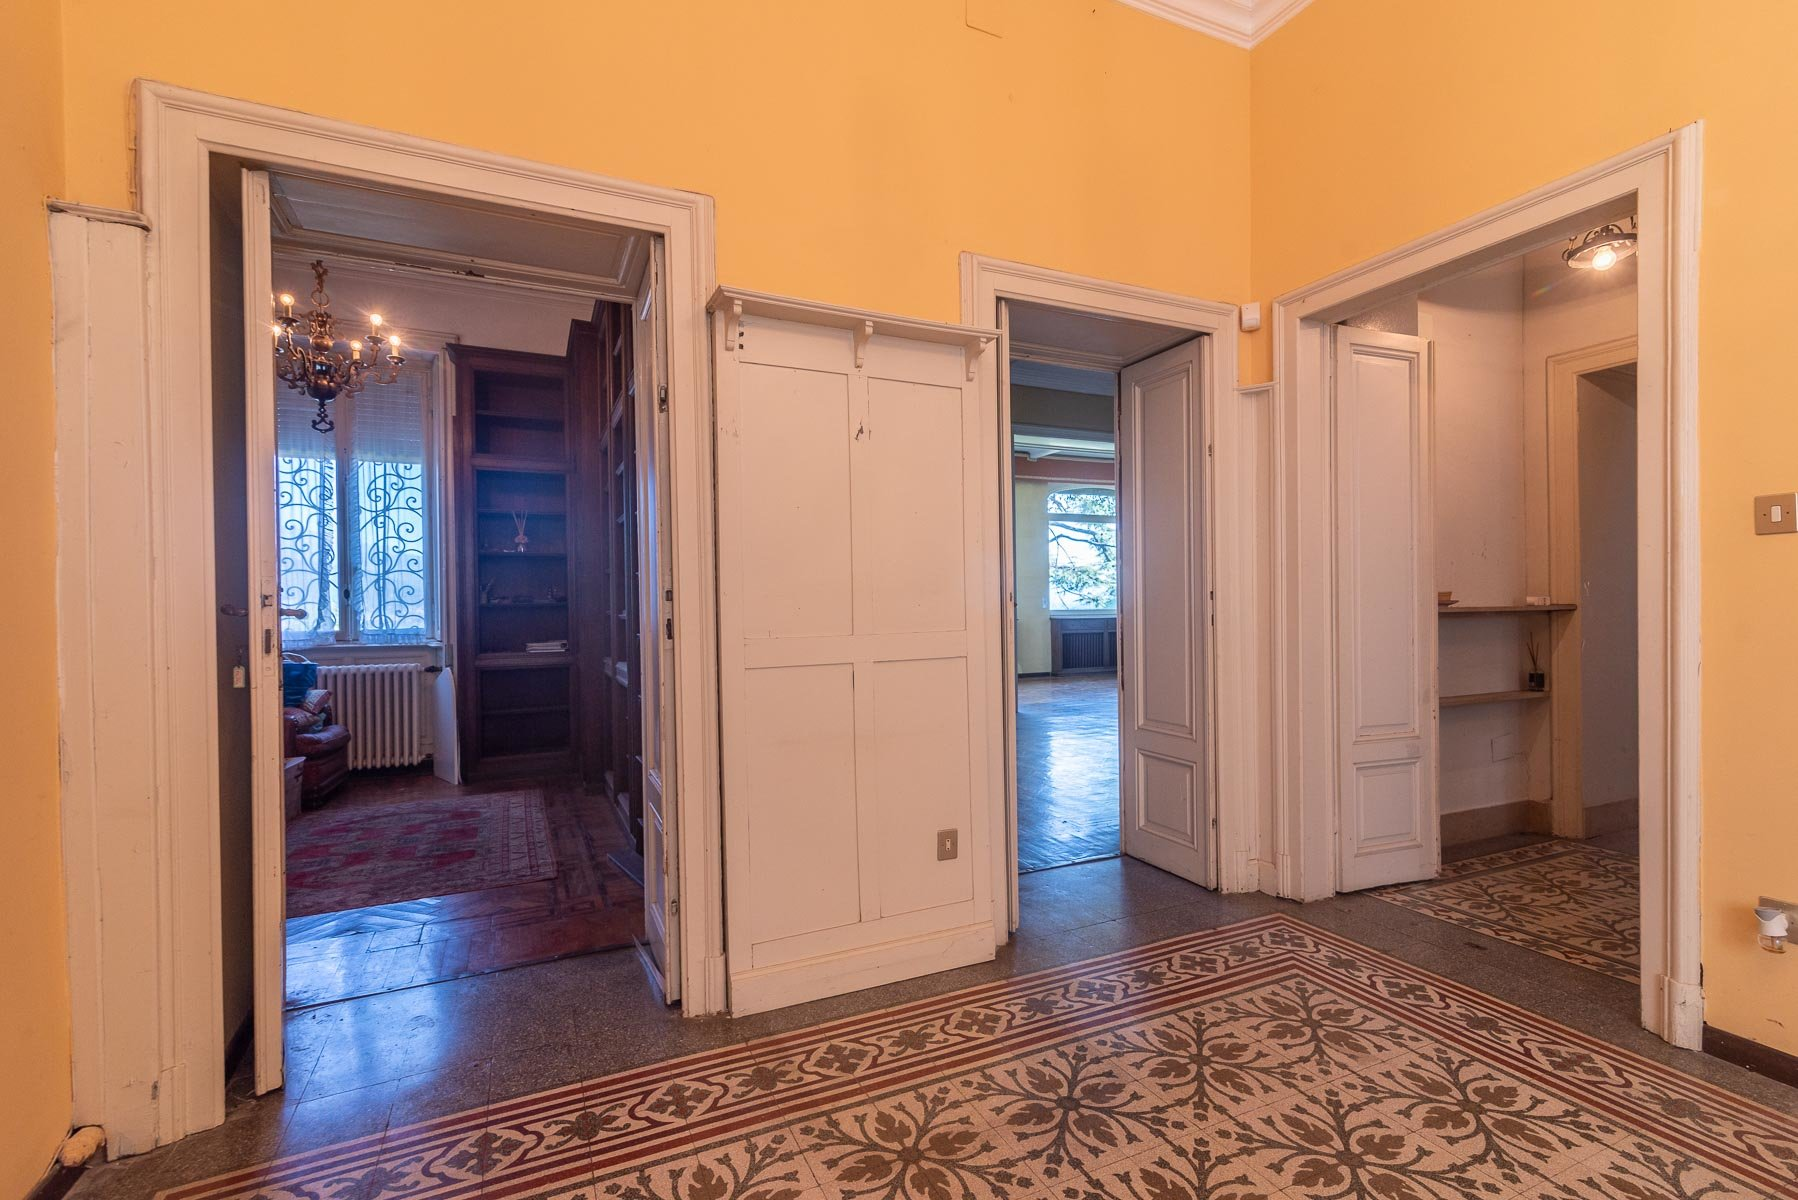 Liberty villa for sale in Stresa - intern